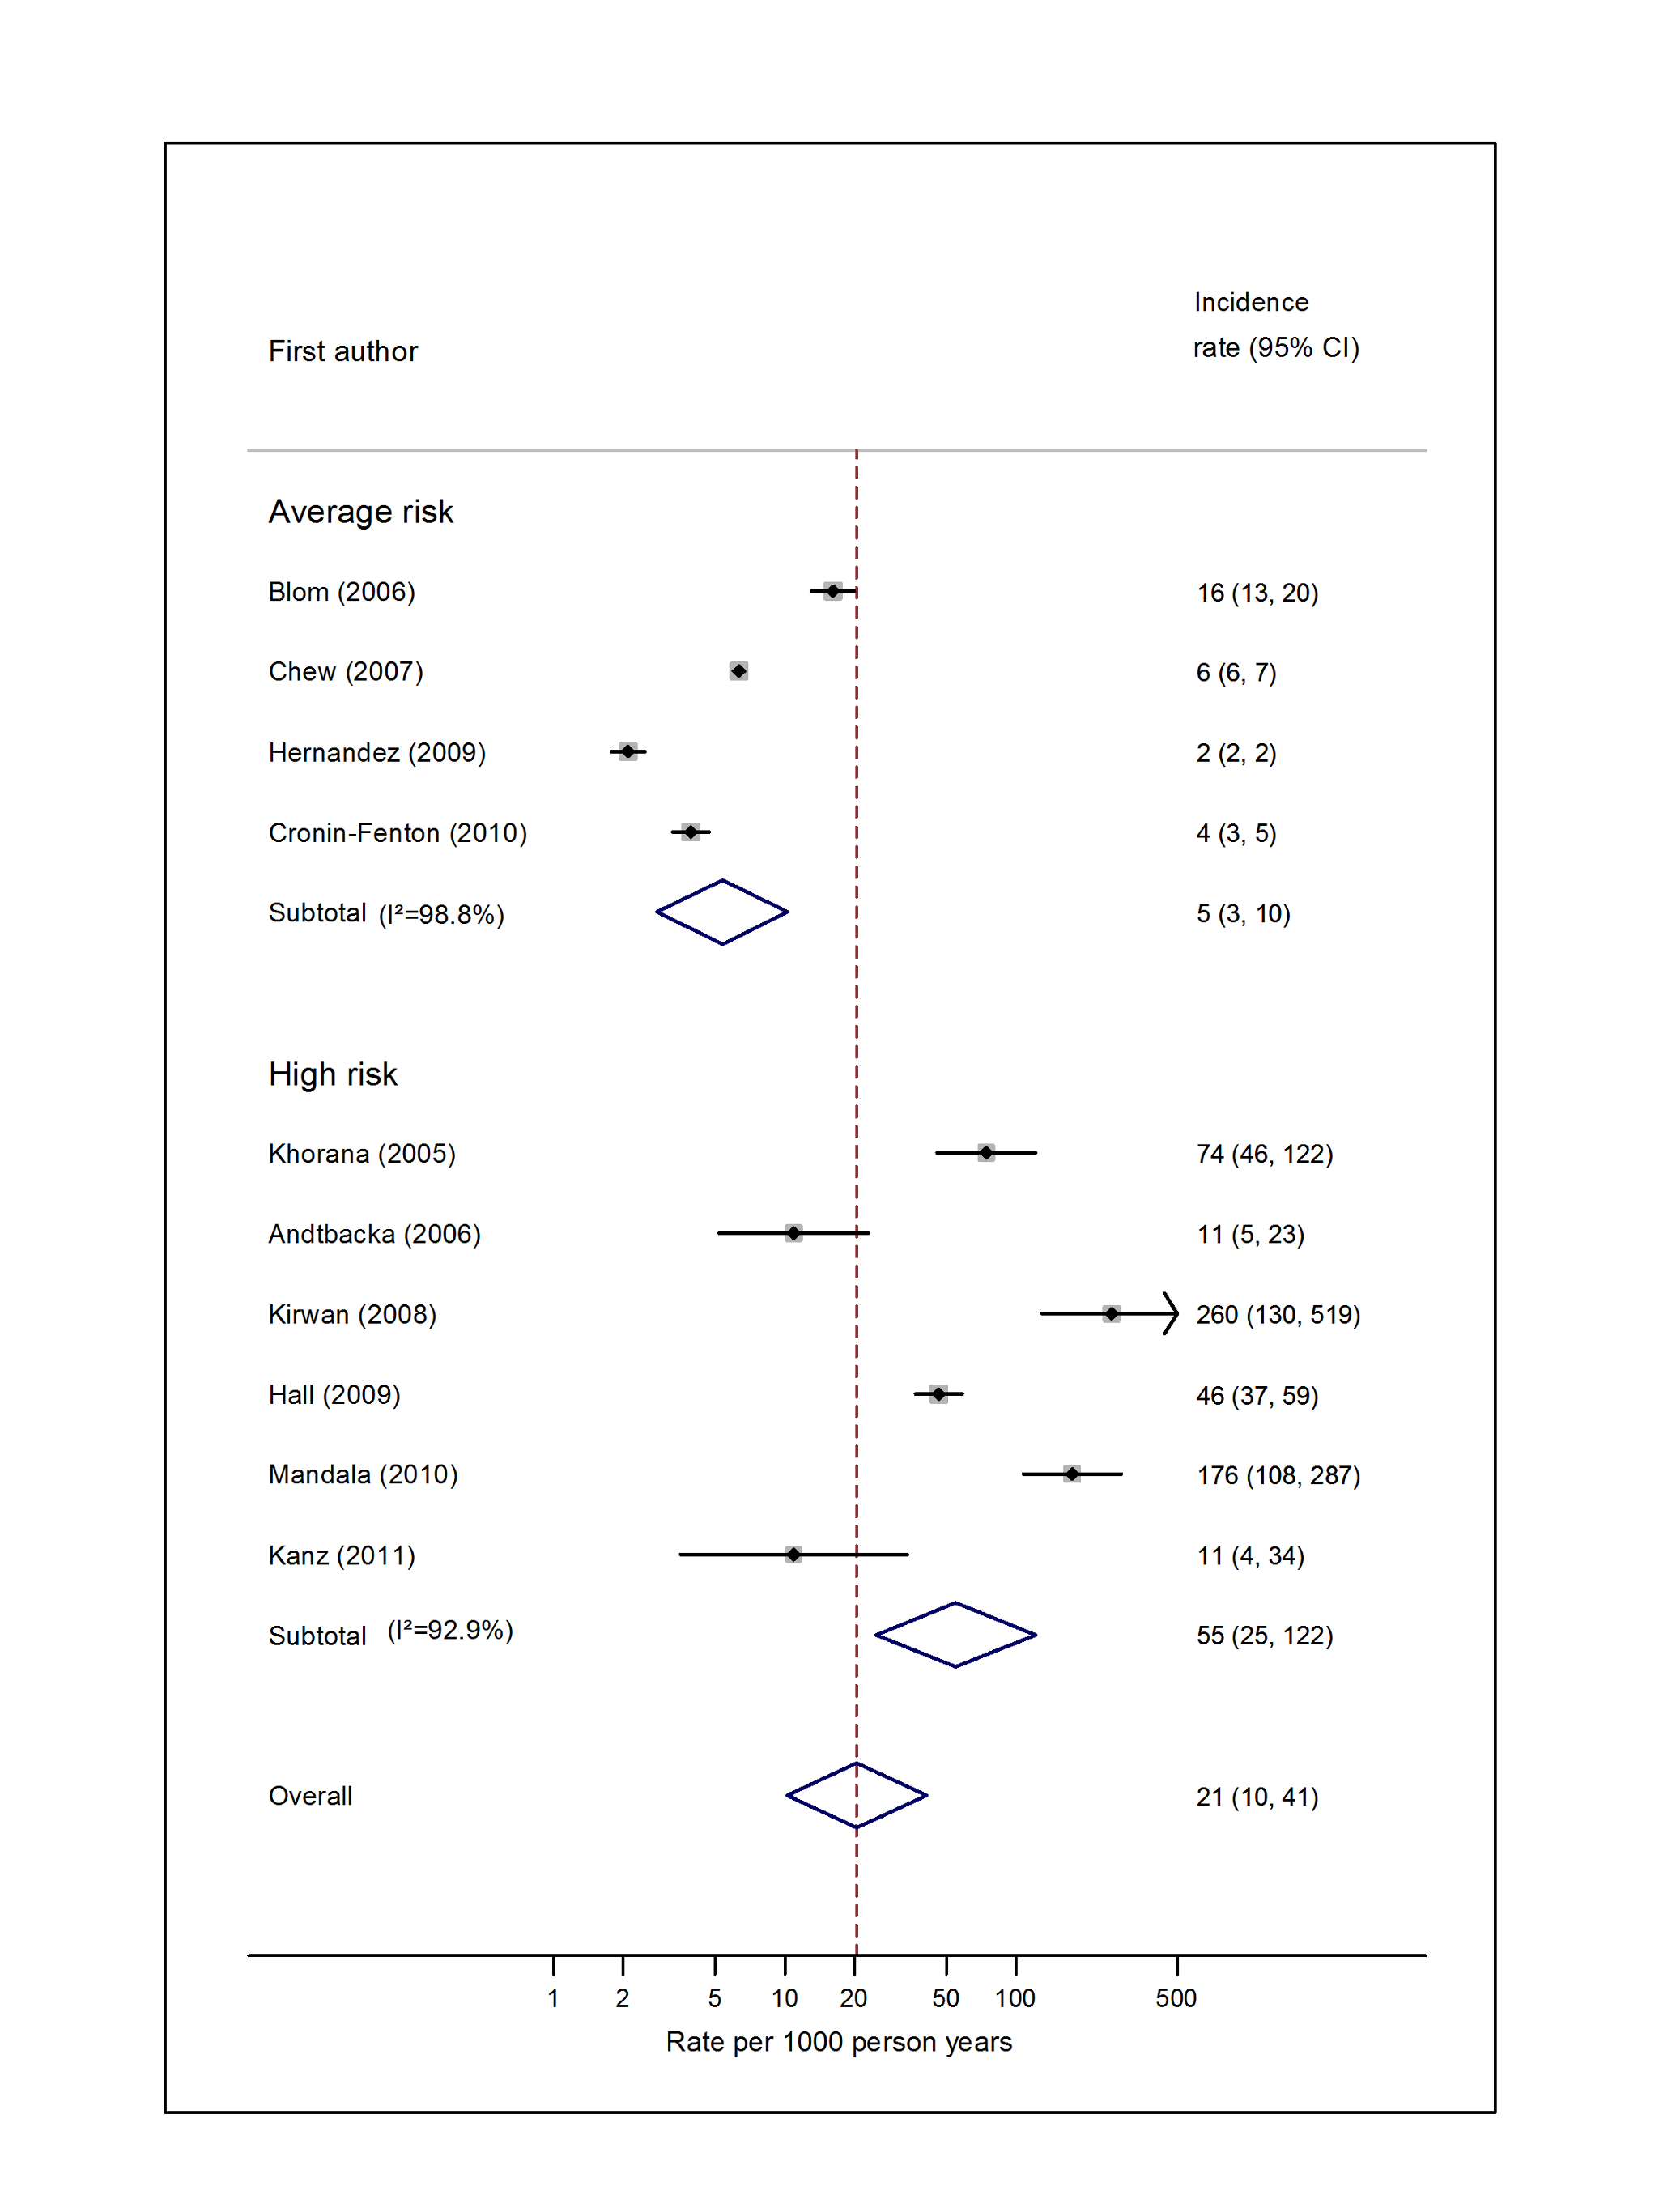 Pooled incidence of venous thromboembolism for breast cancer.